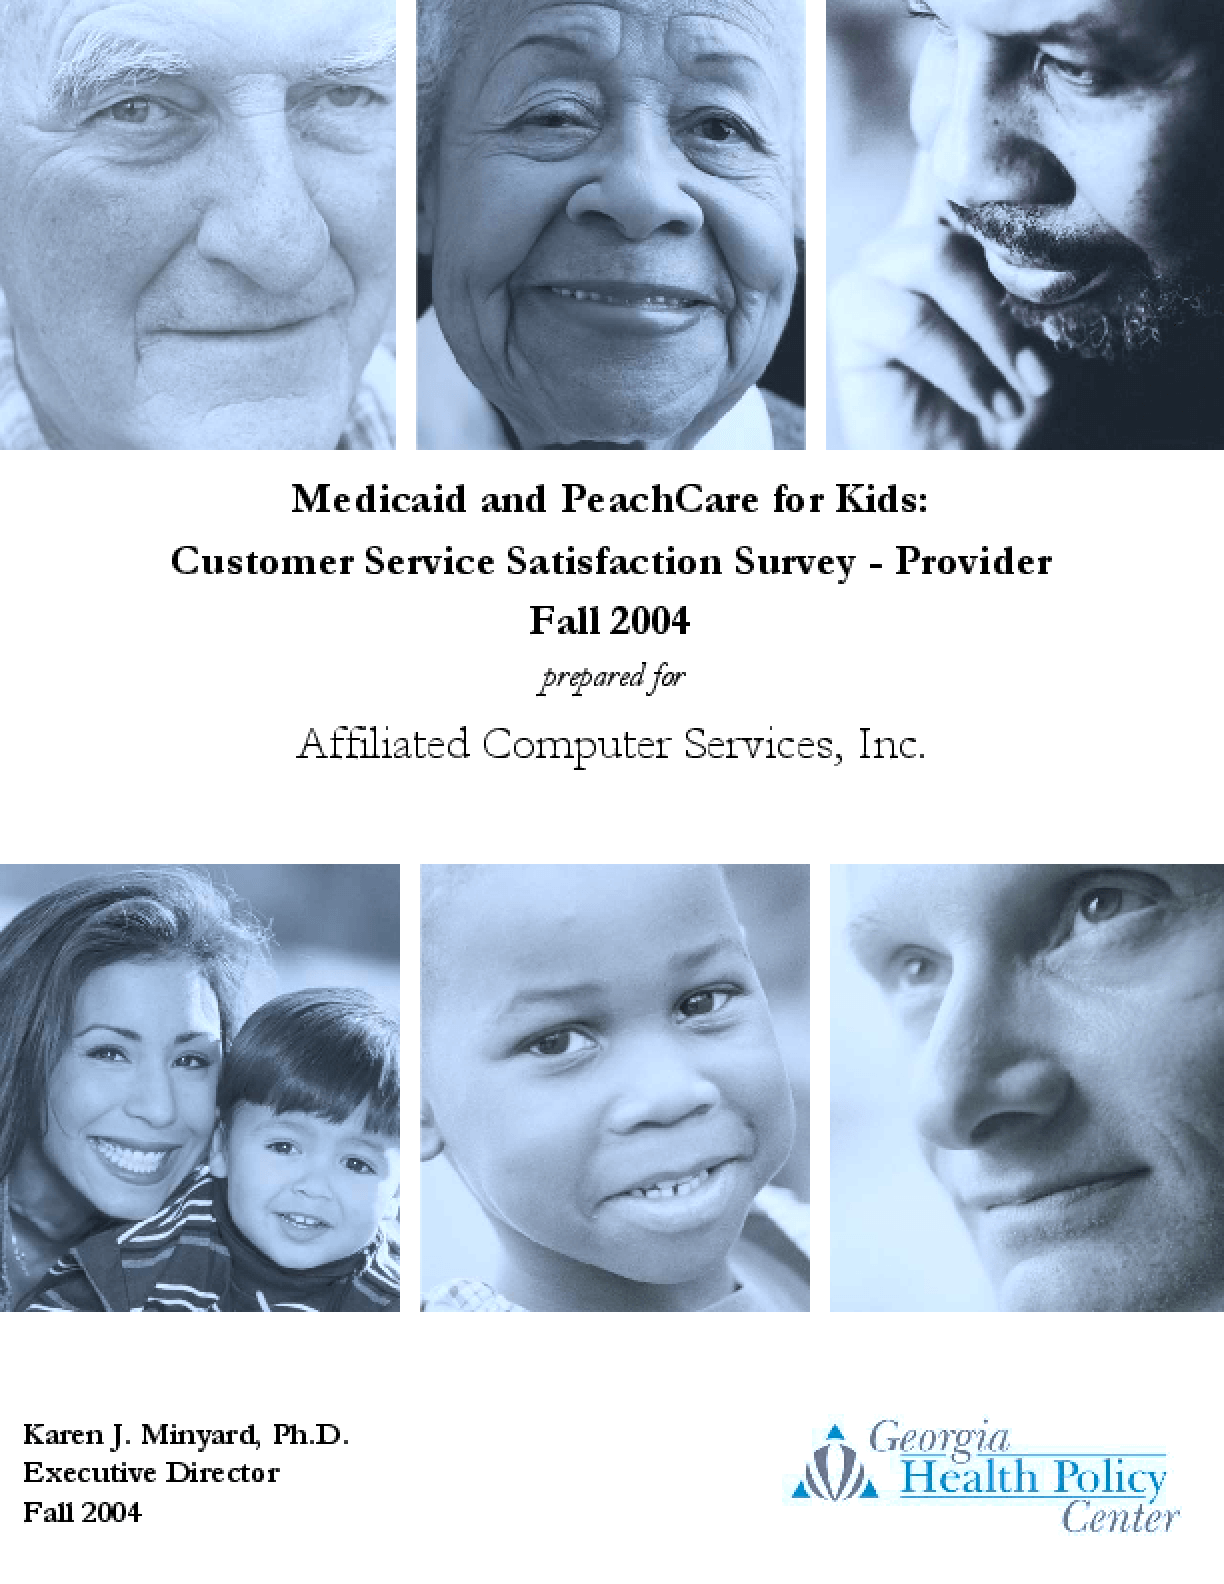 Medicaid and PeachCare for Kids: Customer Service Satisfaction Survey - Provider - Fall 2004